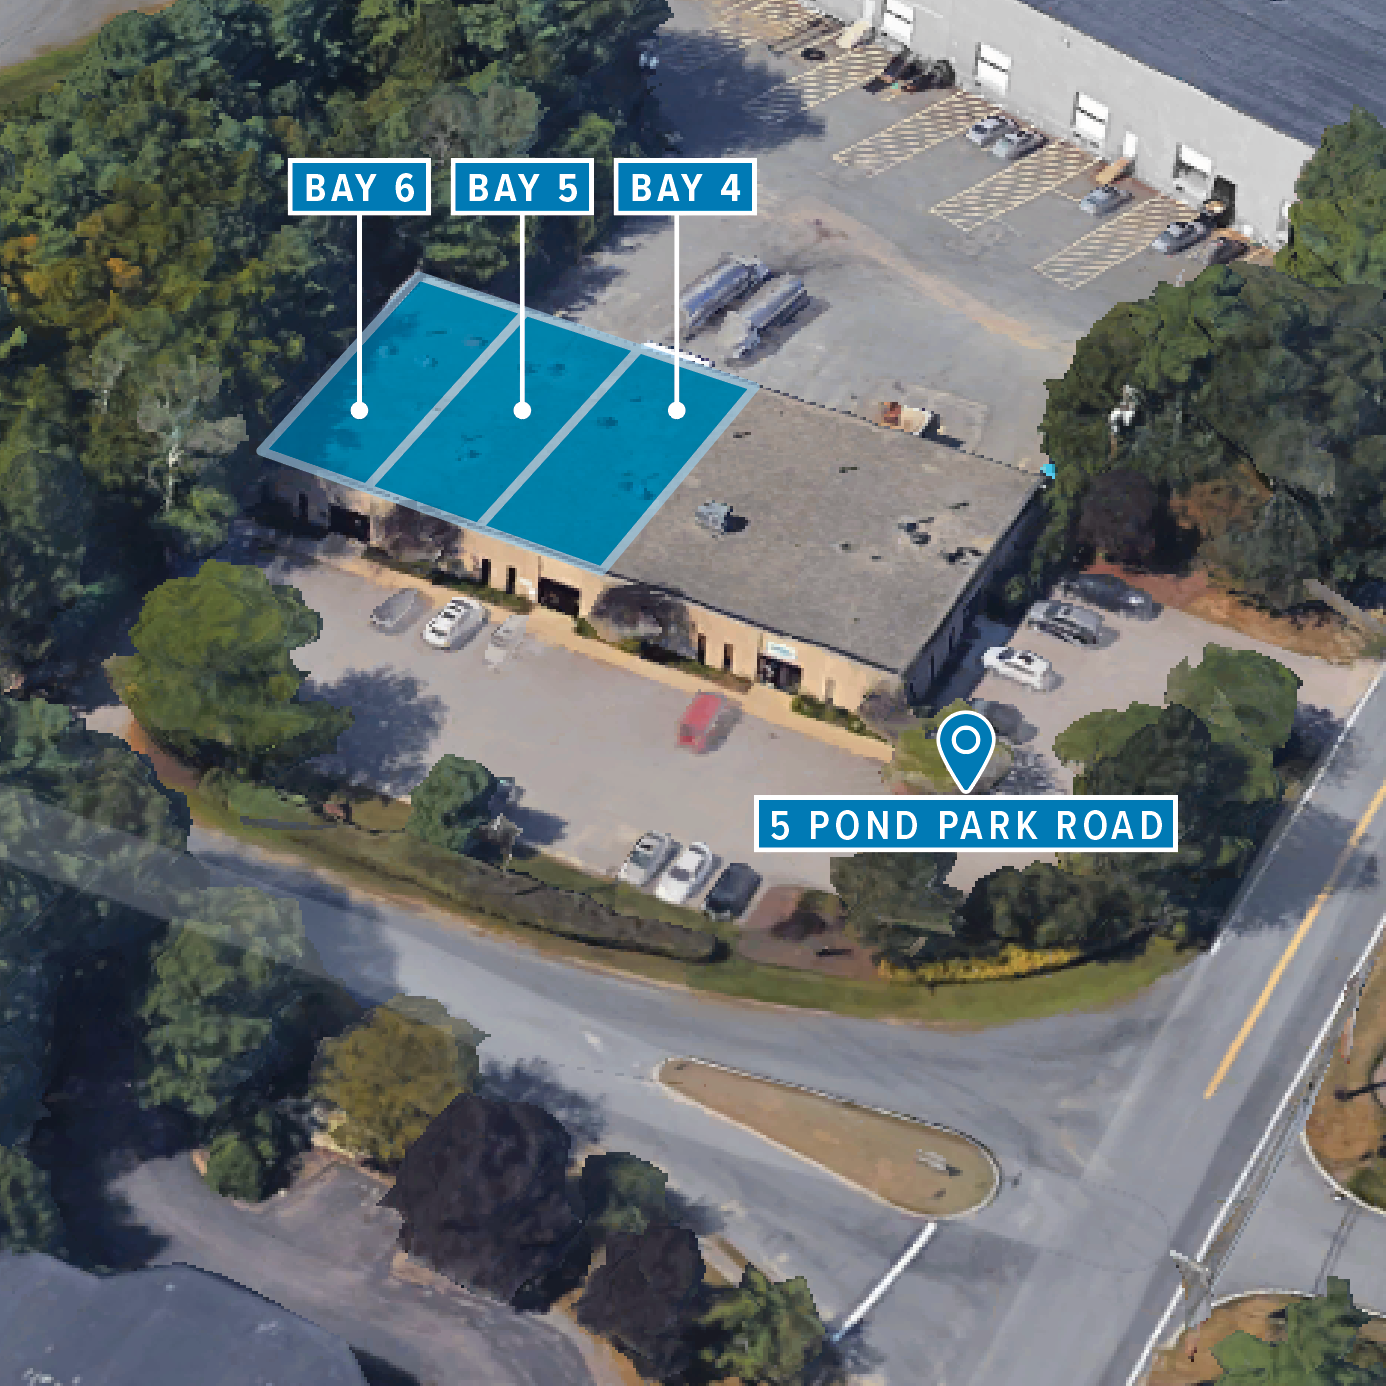 5 POND PARK ROAD - Office / Warehouse / FlexSouth Shore Park | Hingham, MA